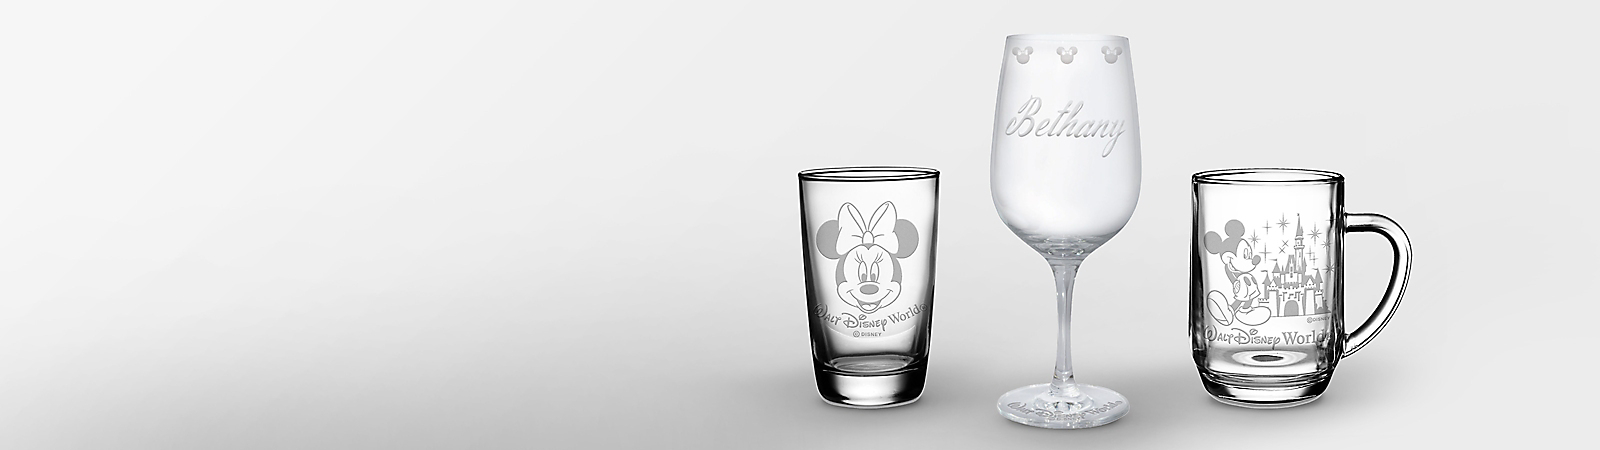 Background image of Glassware